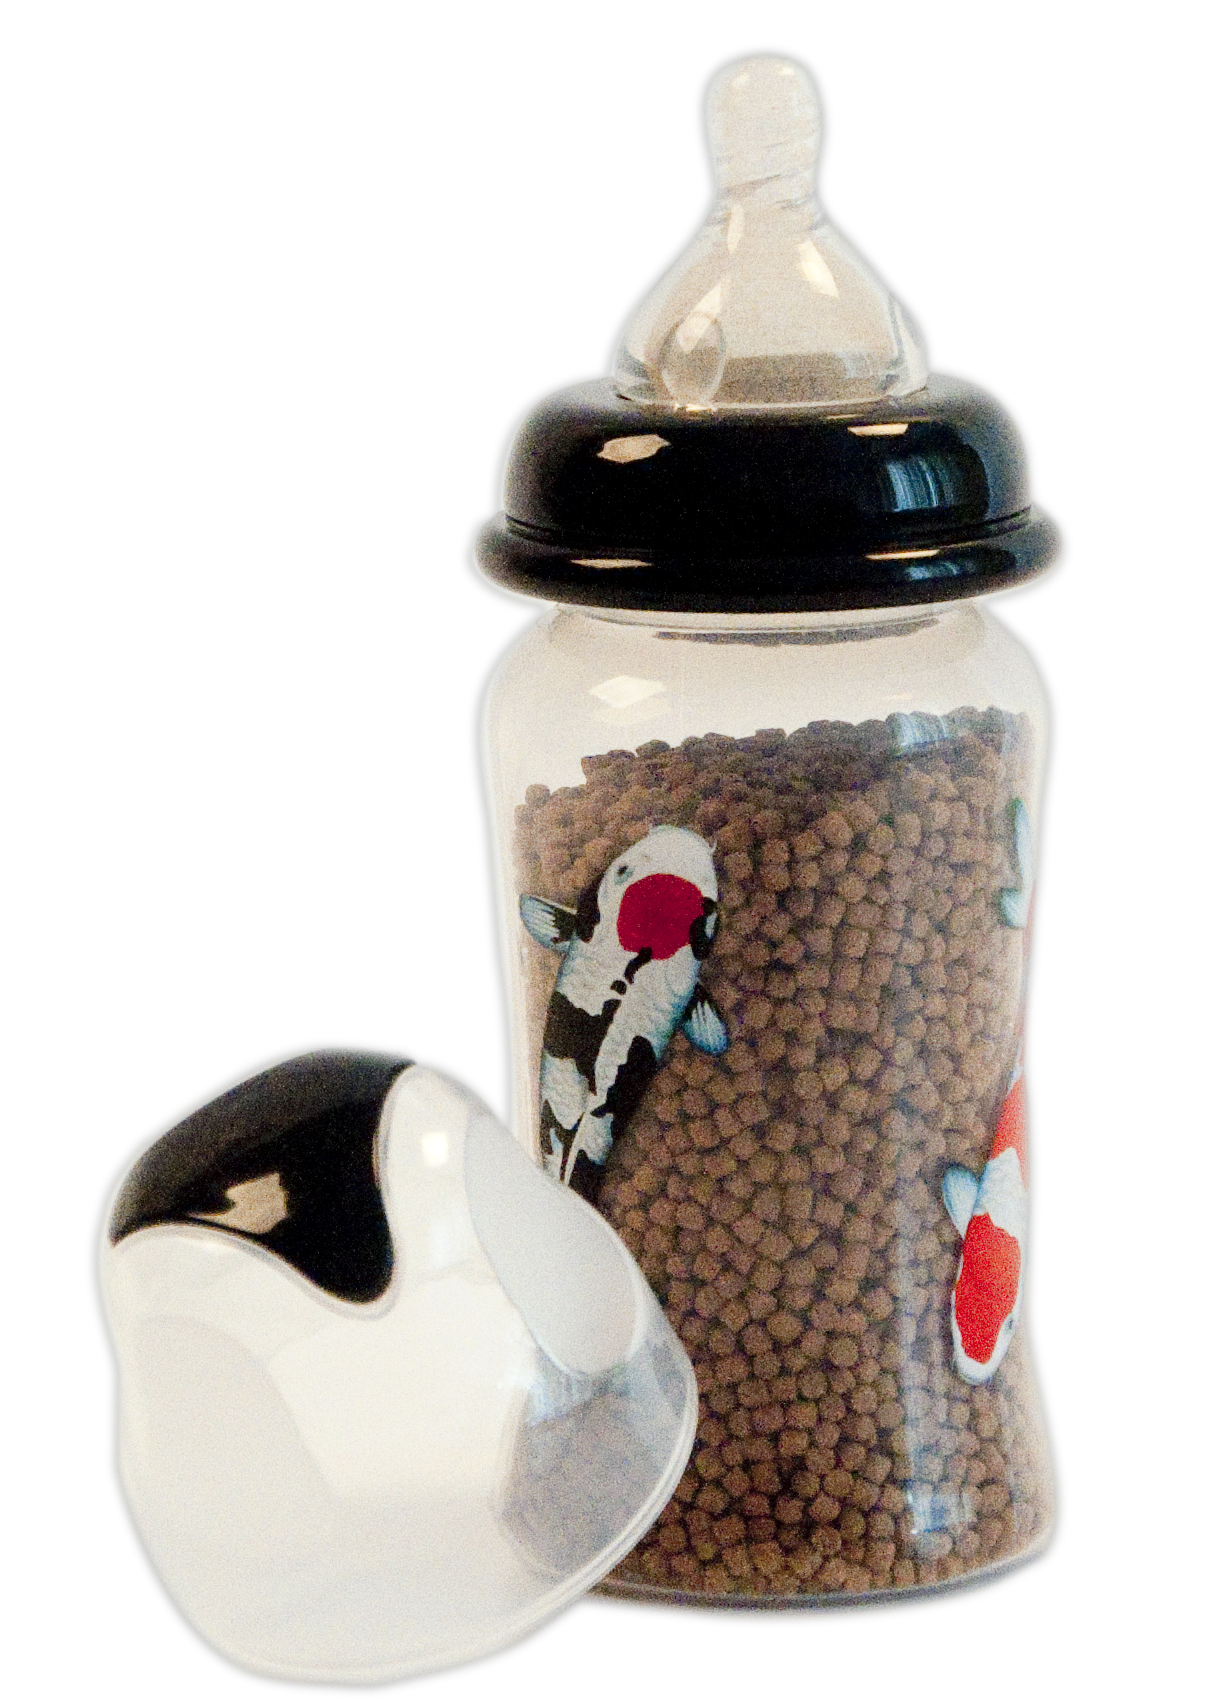 Velda Fish Feeding Bottle Fischfutterflasche